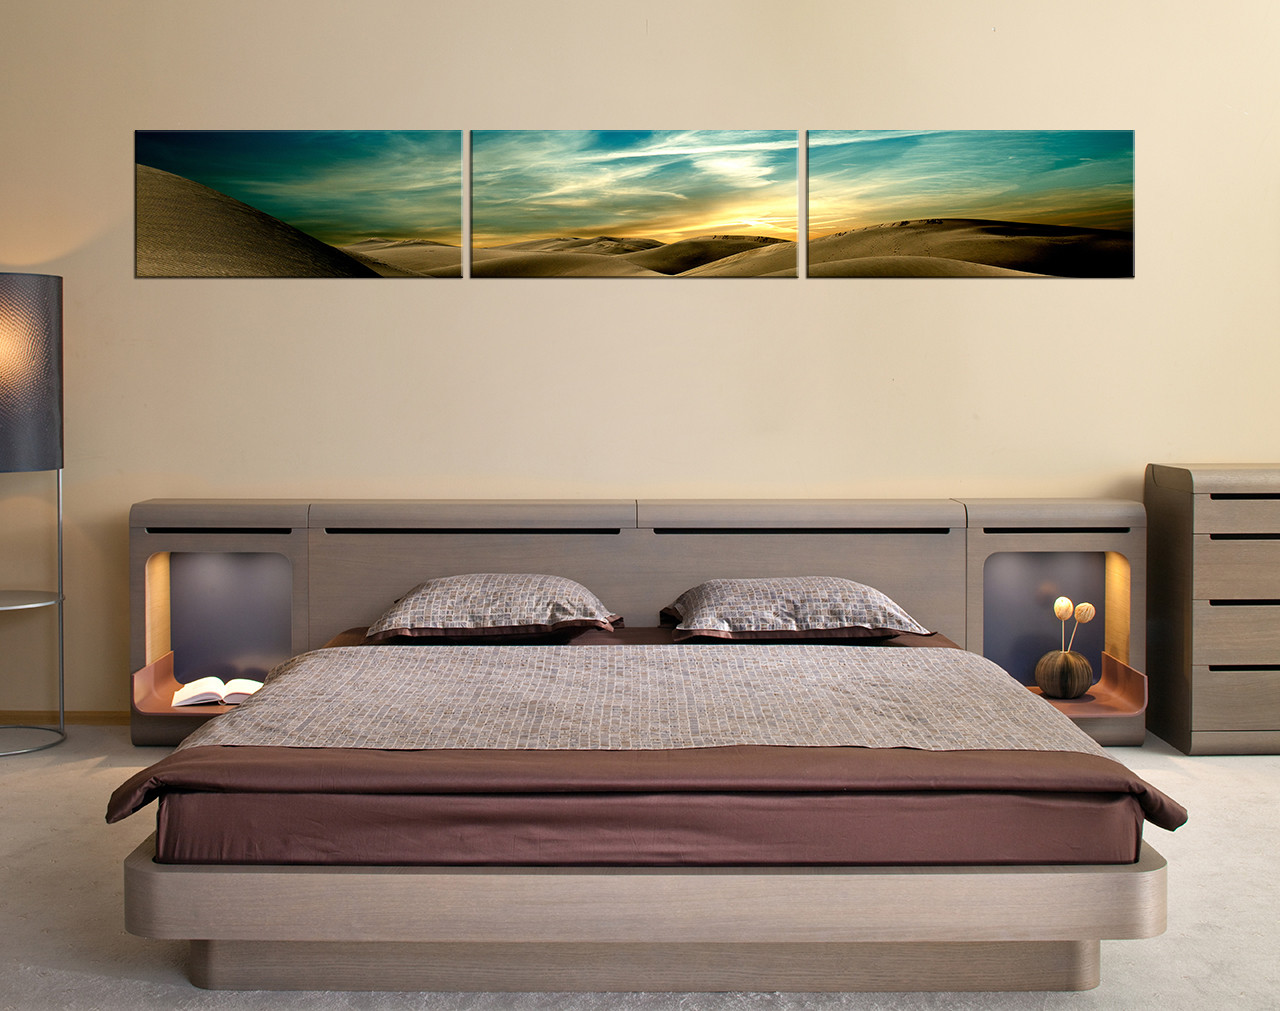 3 Piece Canvas Wall Art Landscape Wall Decor Green Huge Canvas Print Desert Multi Panel